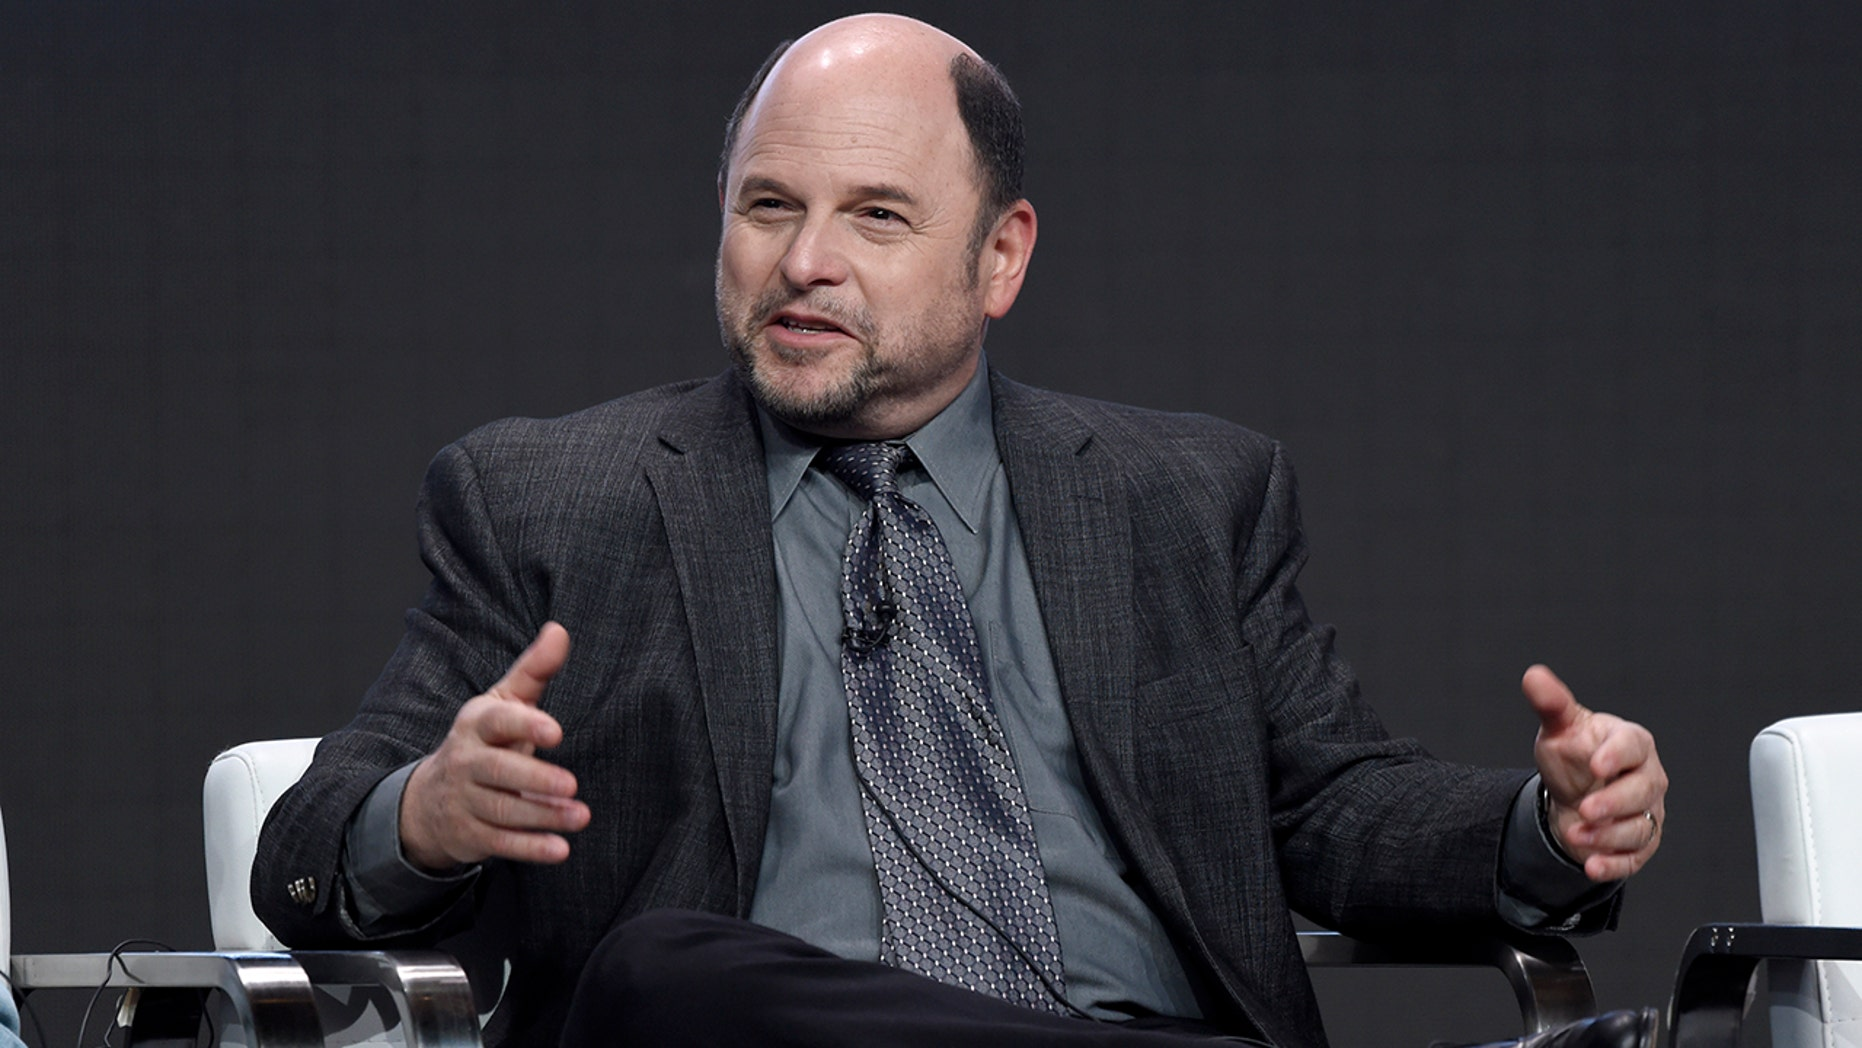 """Jason Alexander participates in the """"Hit the Road"""" panel during the Audience Network Television Critics Association Summer Press Tour at the Beverly Hilton on Tuesday, July 25, 2017, in Beverly Hills, Calif. (Photo by Chris Pizzello/Invision/AP)"""